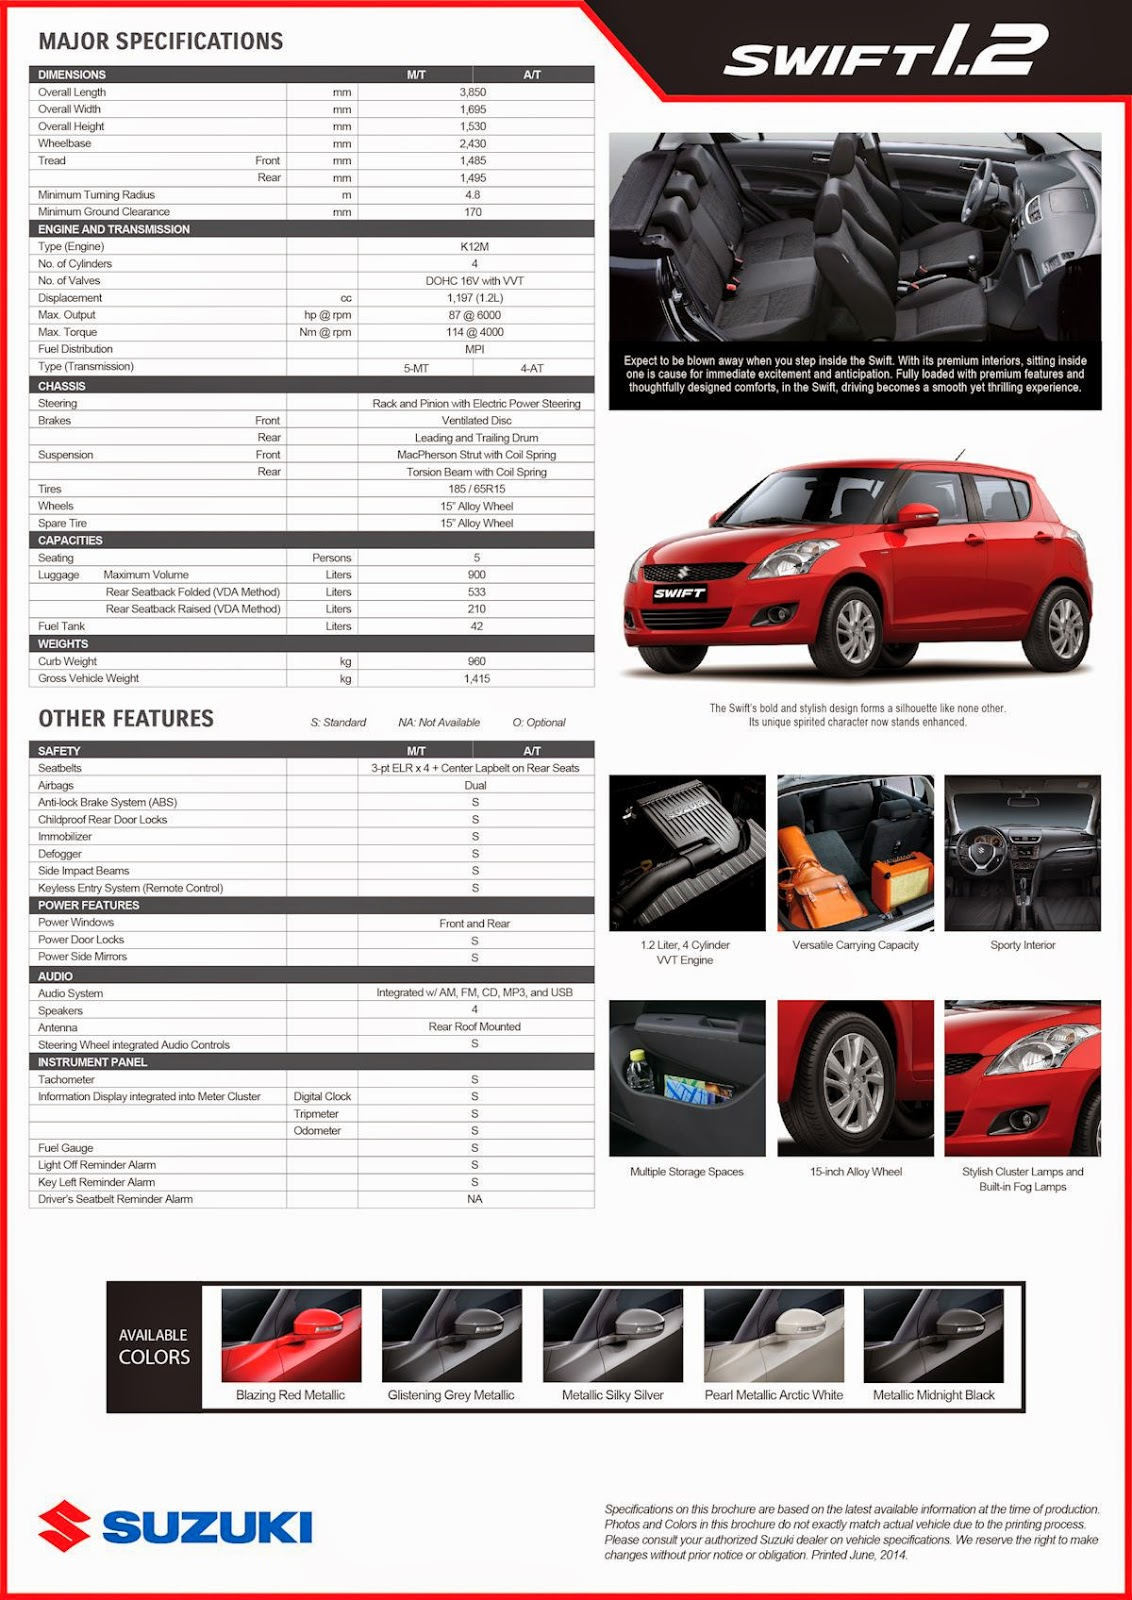 Suzuki Introduces Swift 1 2 Yours Starting At P 608 000 W